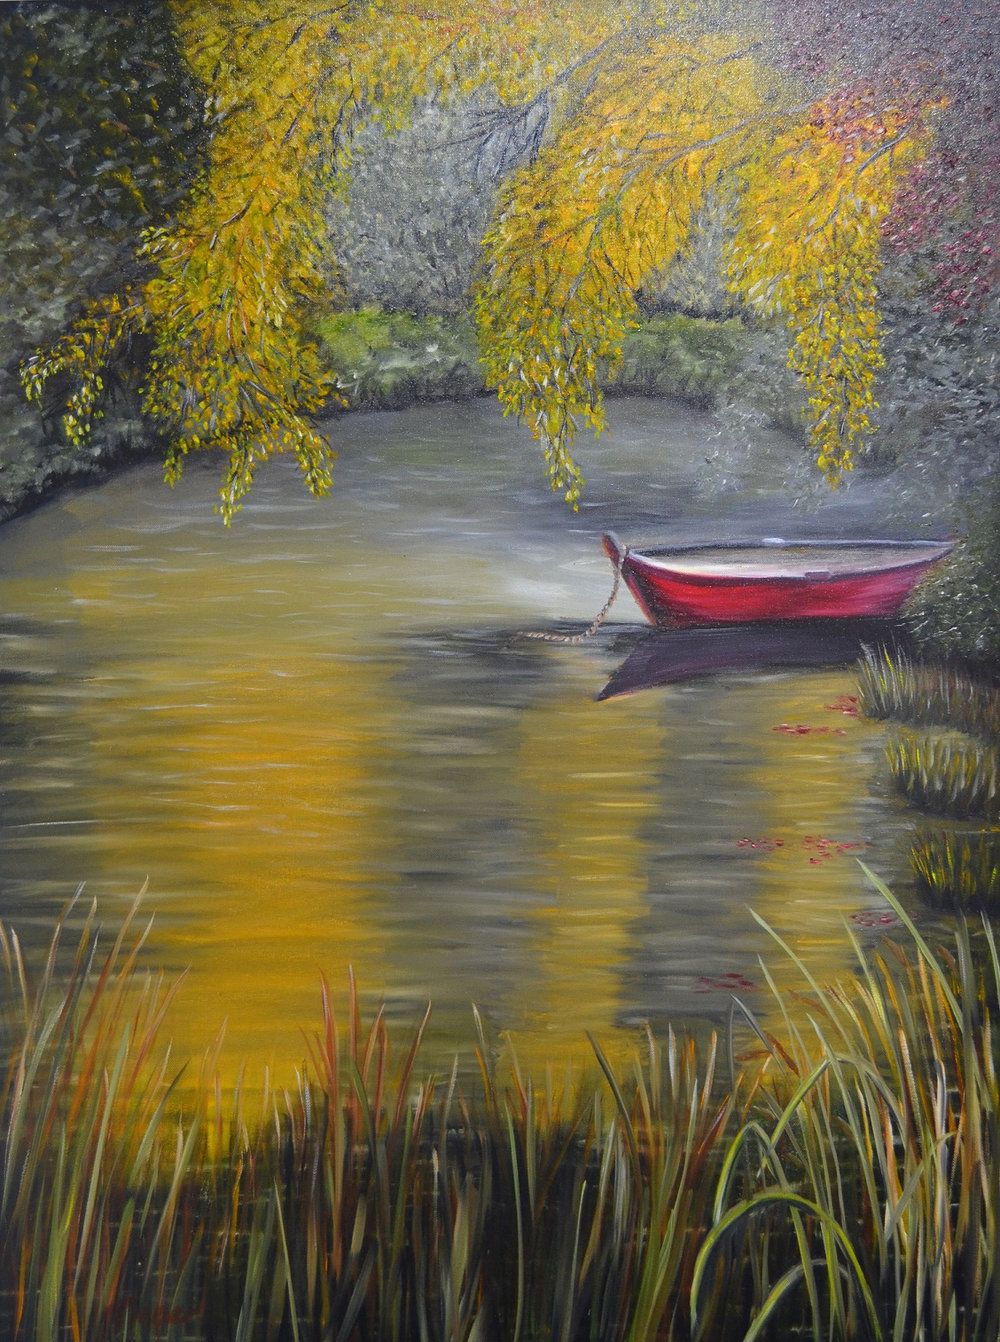 """Canoe On Golden Pond"" by Teresa McCarthy, 30x40in, oil on canvas (2016)"